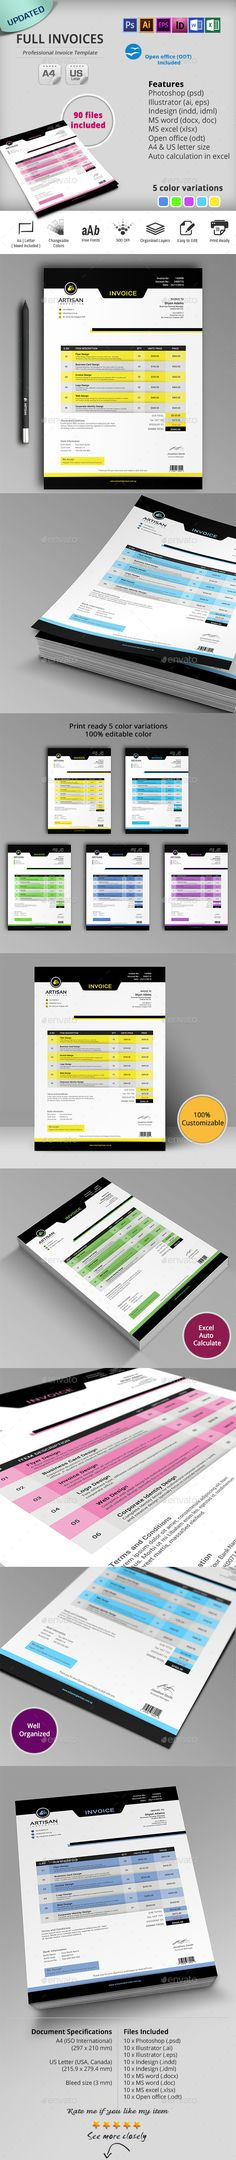 Invoice - #Proposals  Invoices #Stationery Download here